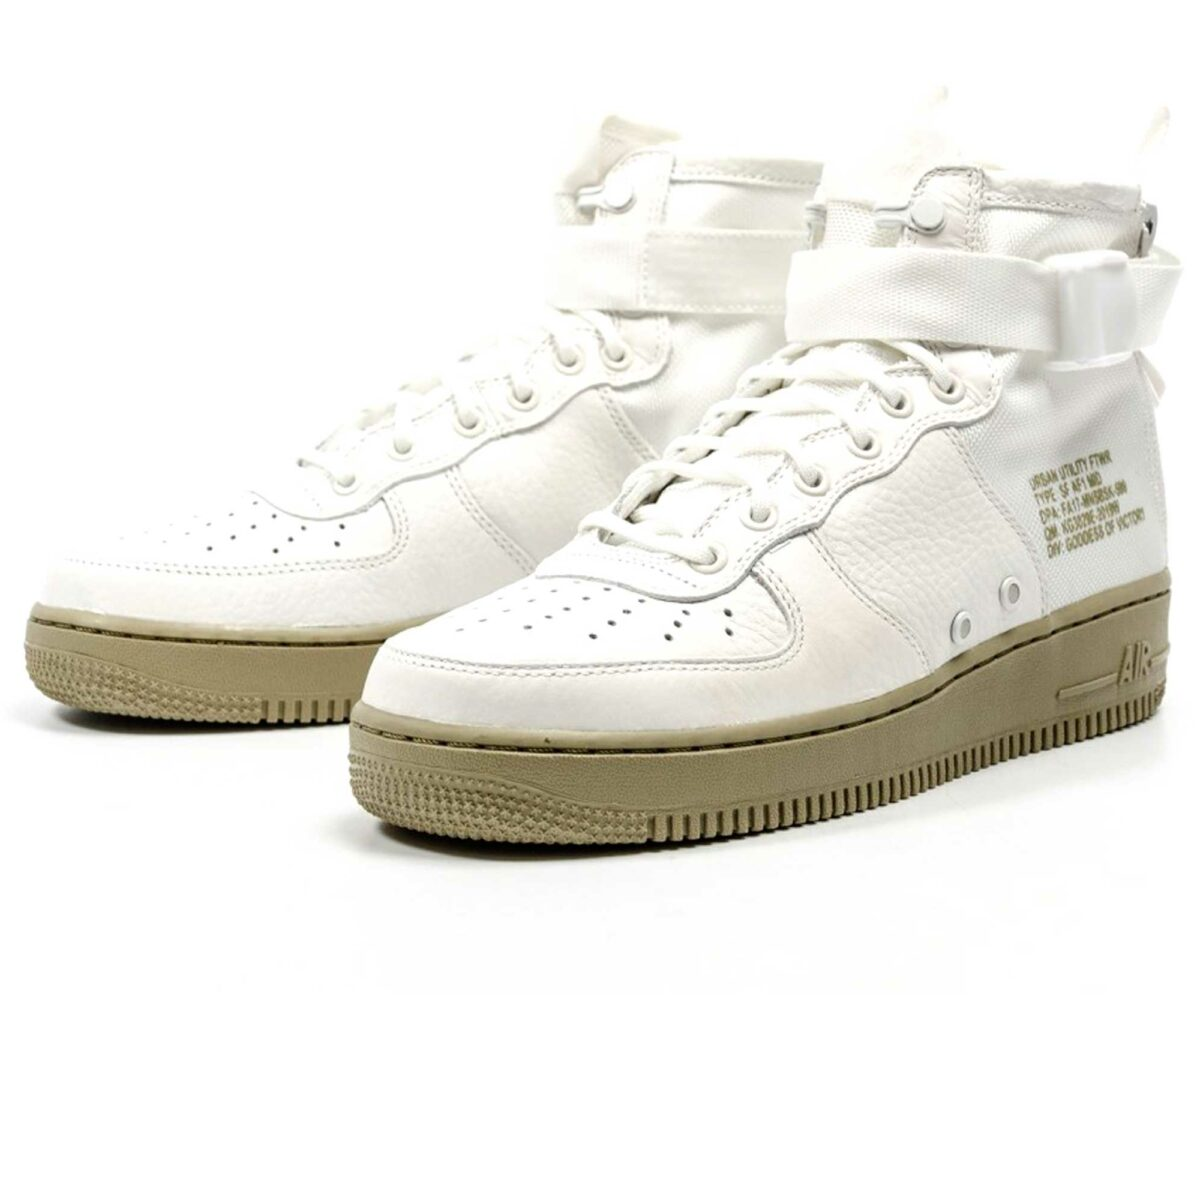 nike sf air force 1 mid ivory 917753-101 купить